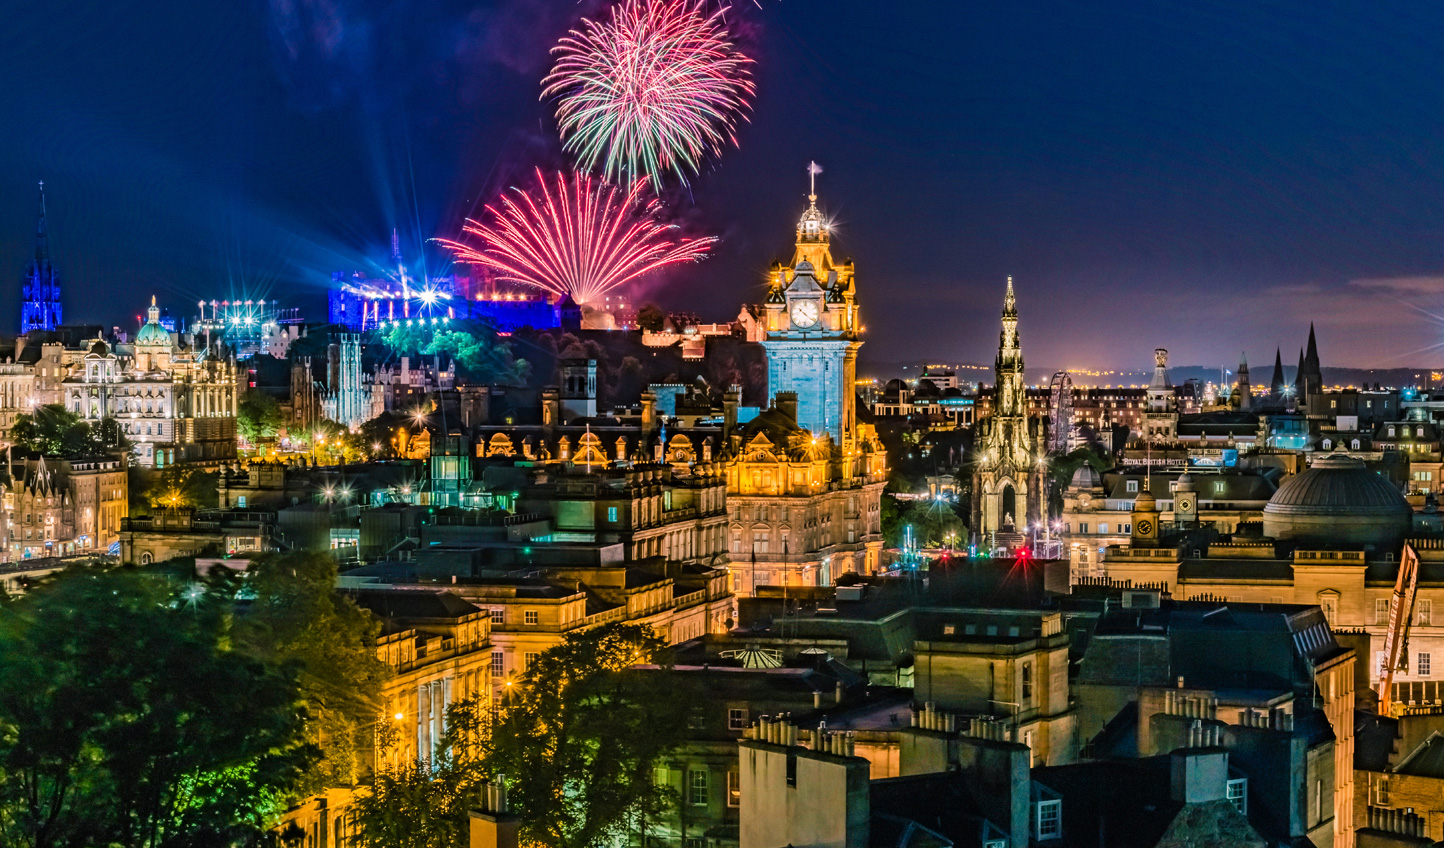 Visit Edinburgh in August and watch the fireworks of the Royal Military Tattoo light up the sky